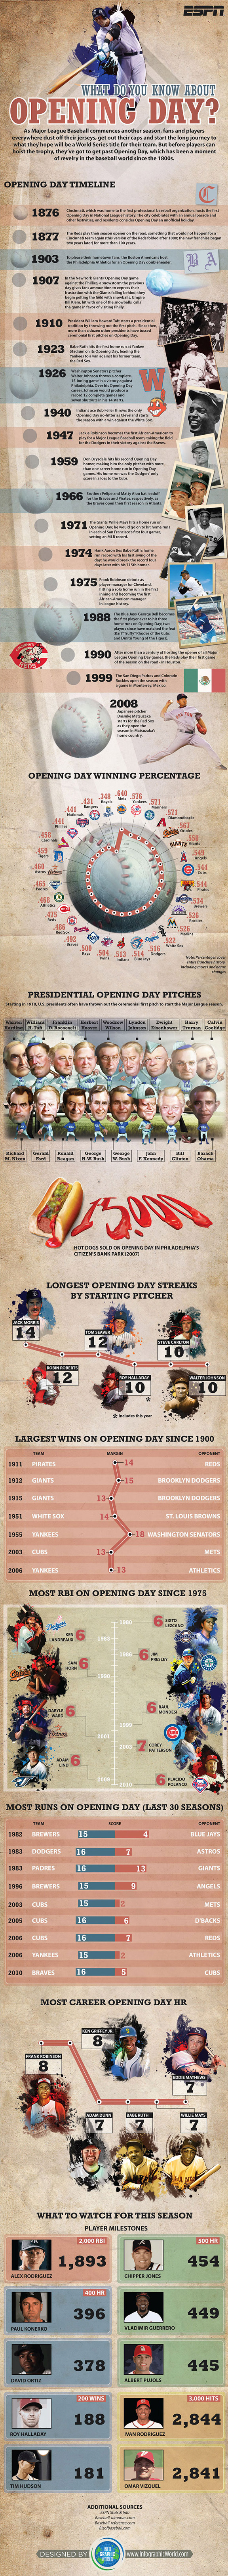 What do you know about opening day